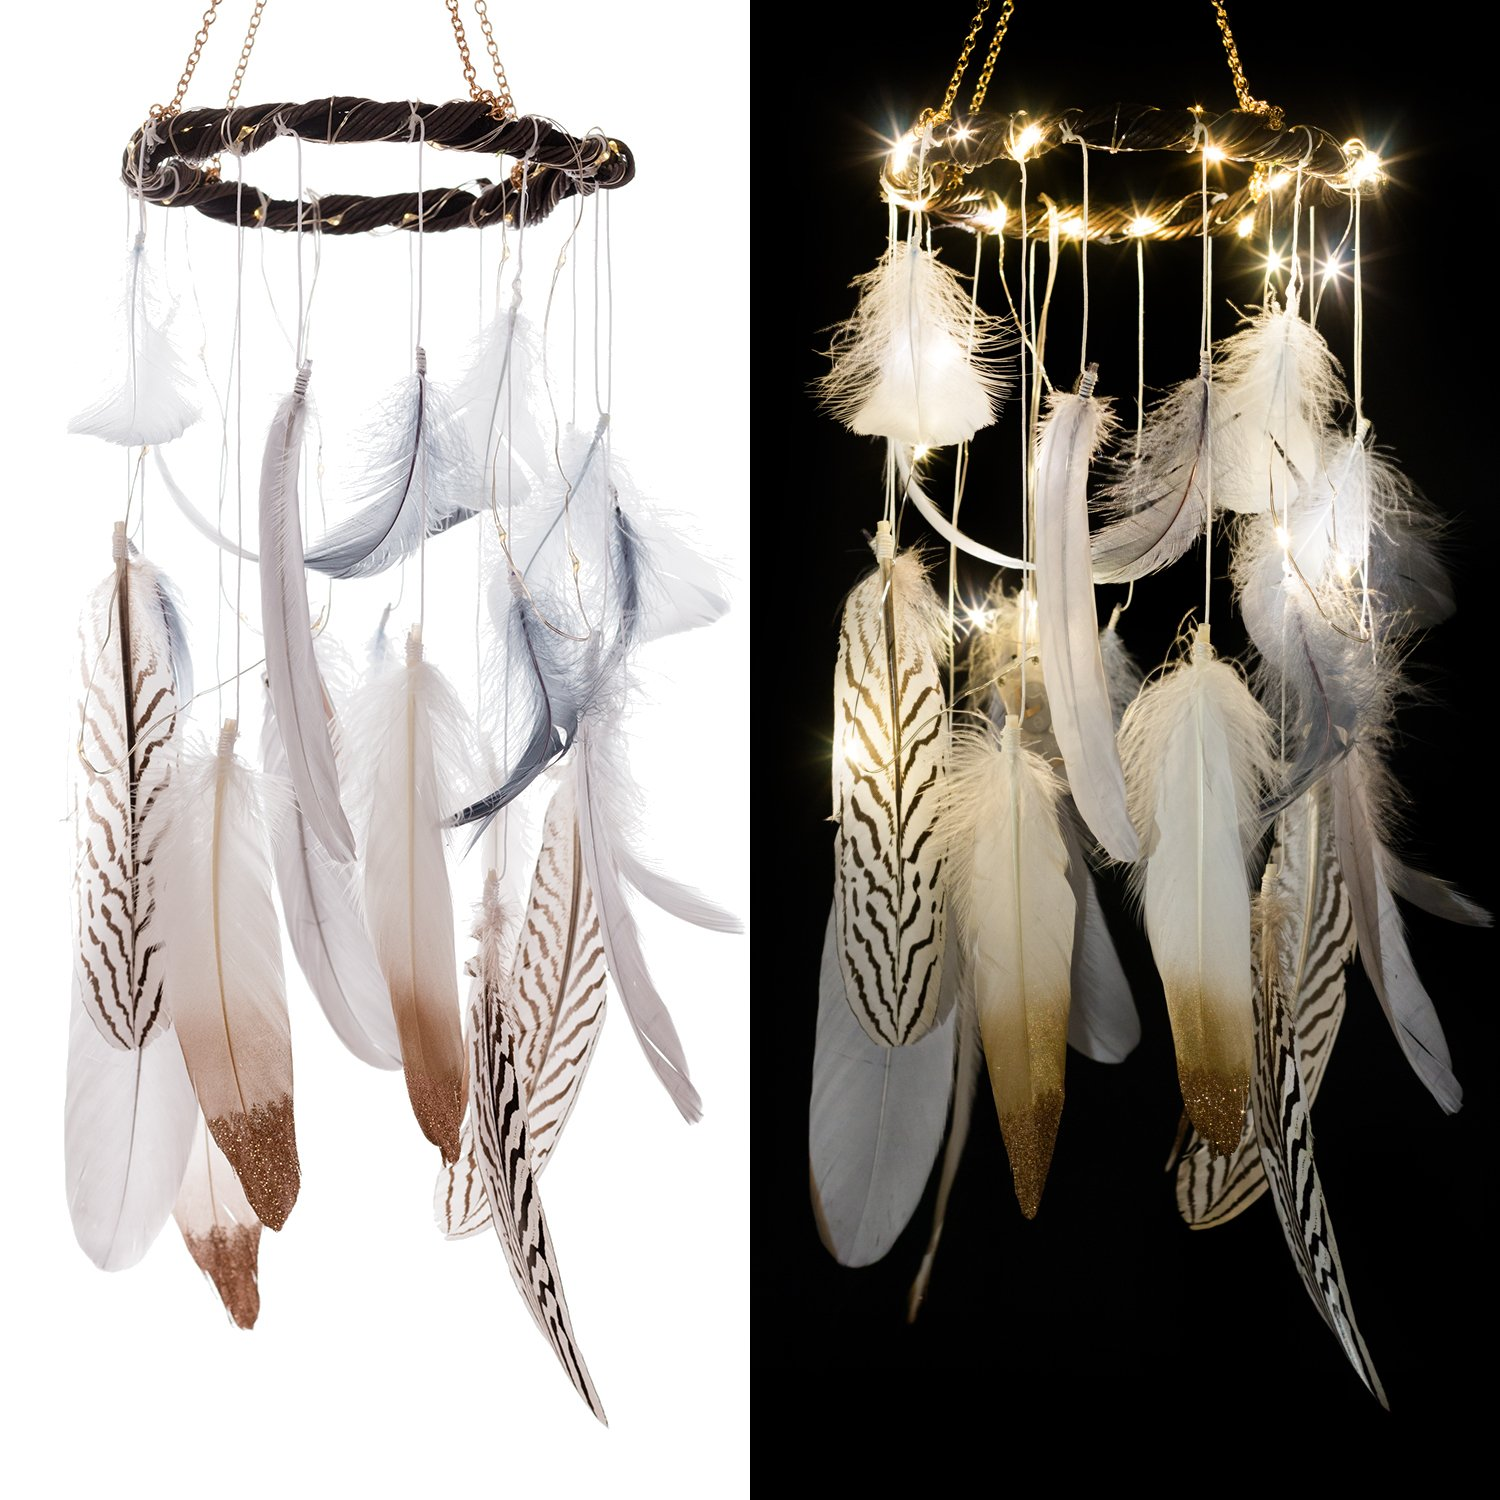 Ling's moment Feather Dream Catcher Mobile LED Fairy Lights Battery Powered Hanging Ornaments with Gold Dipped Glitter Feathers Bohemian Wedding Decorations, Boho Chic, Nursery Decor Ling's moment